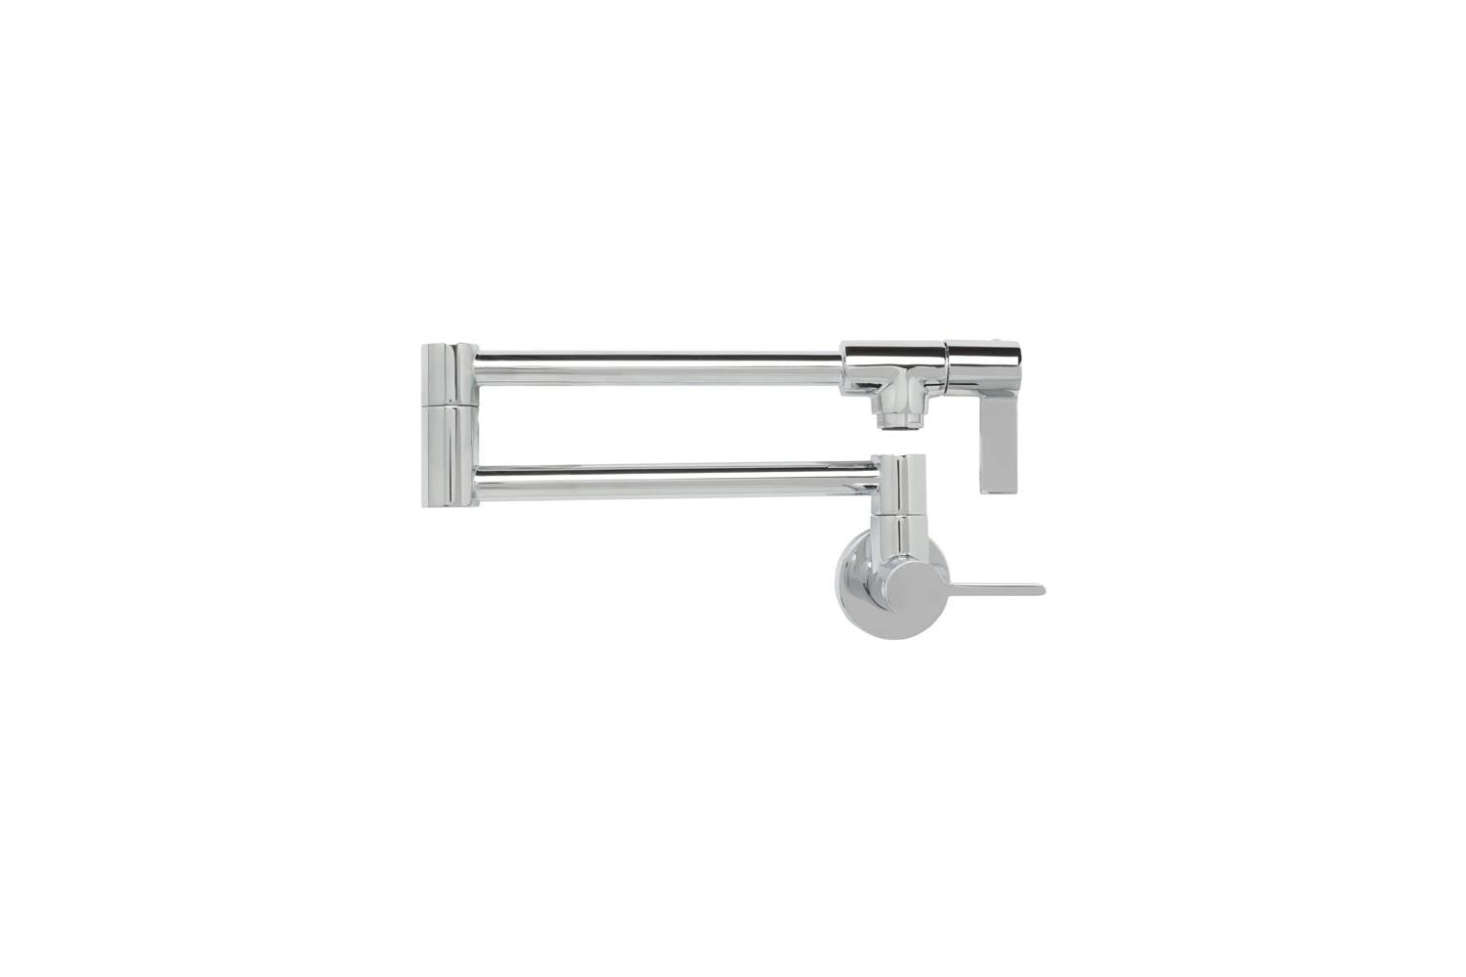 The Franke Ambient Pot Filler Faucet comes in three finishes for $464.40 at Quality Bath.